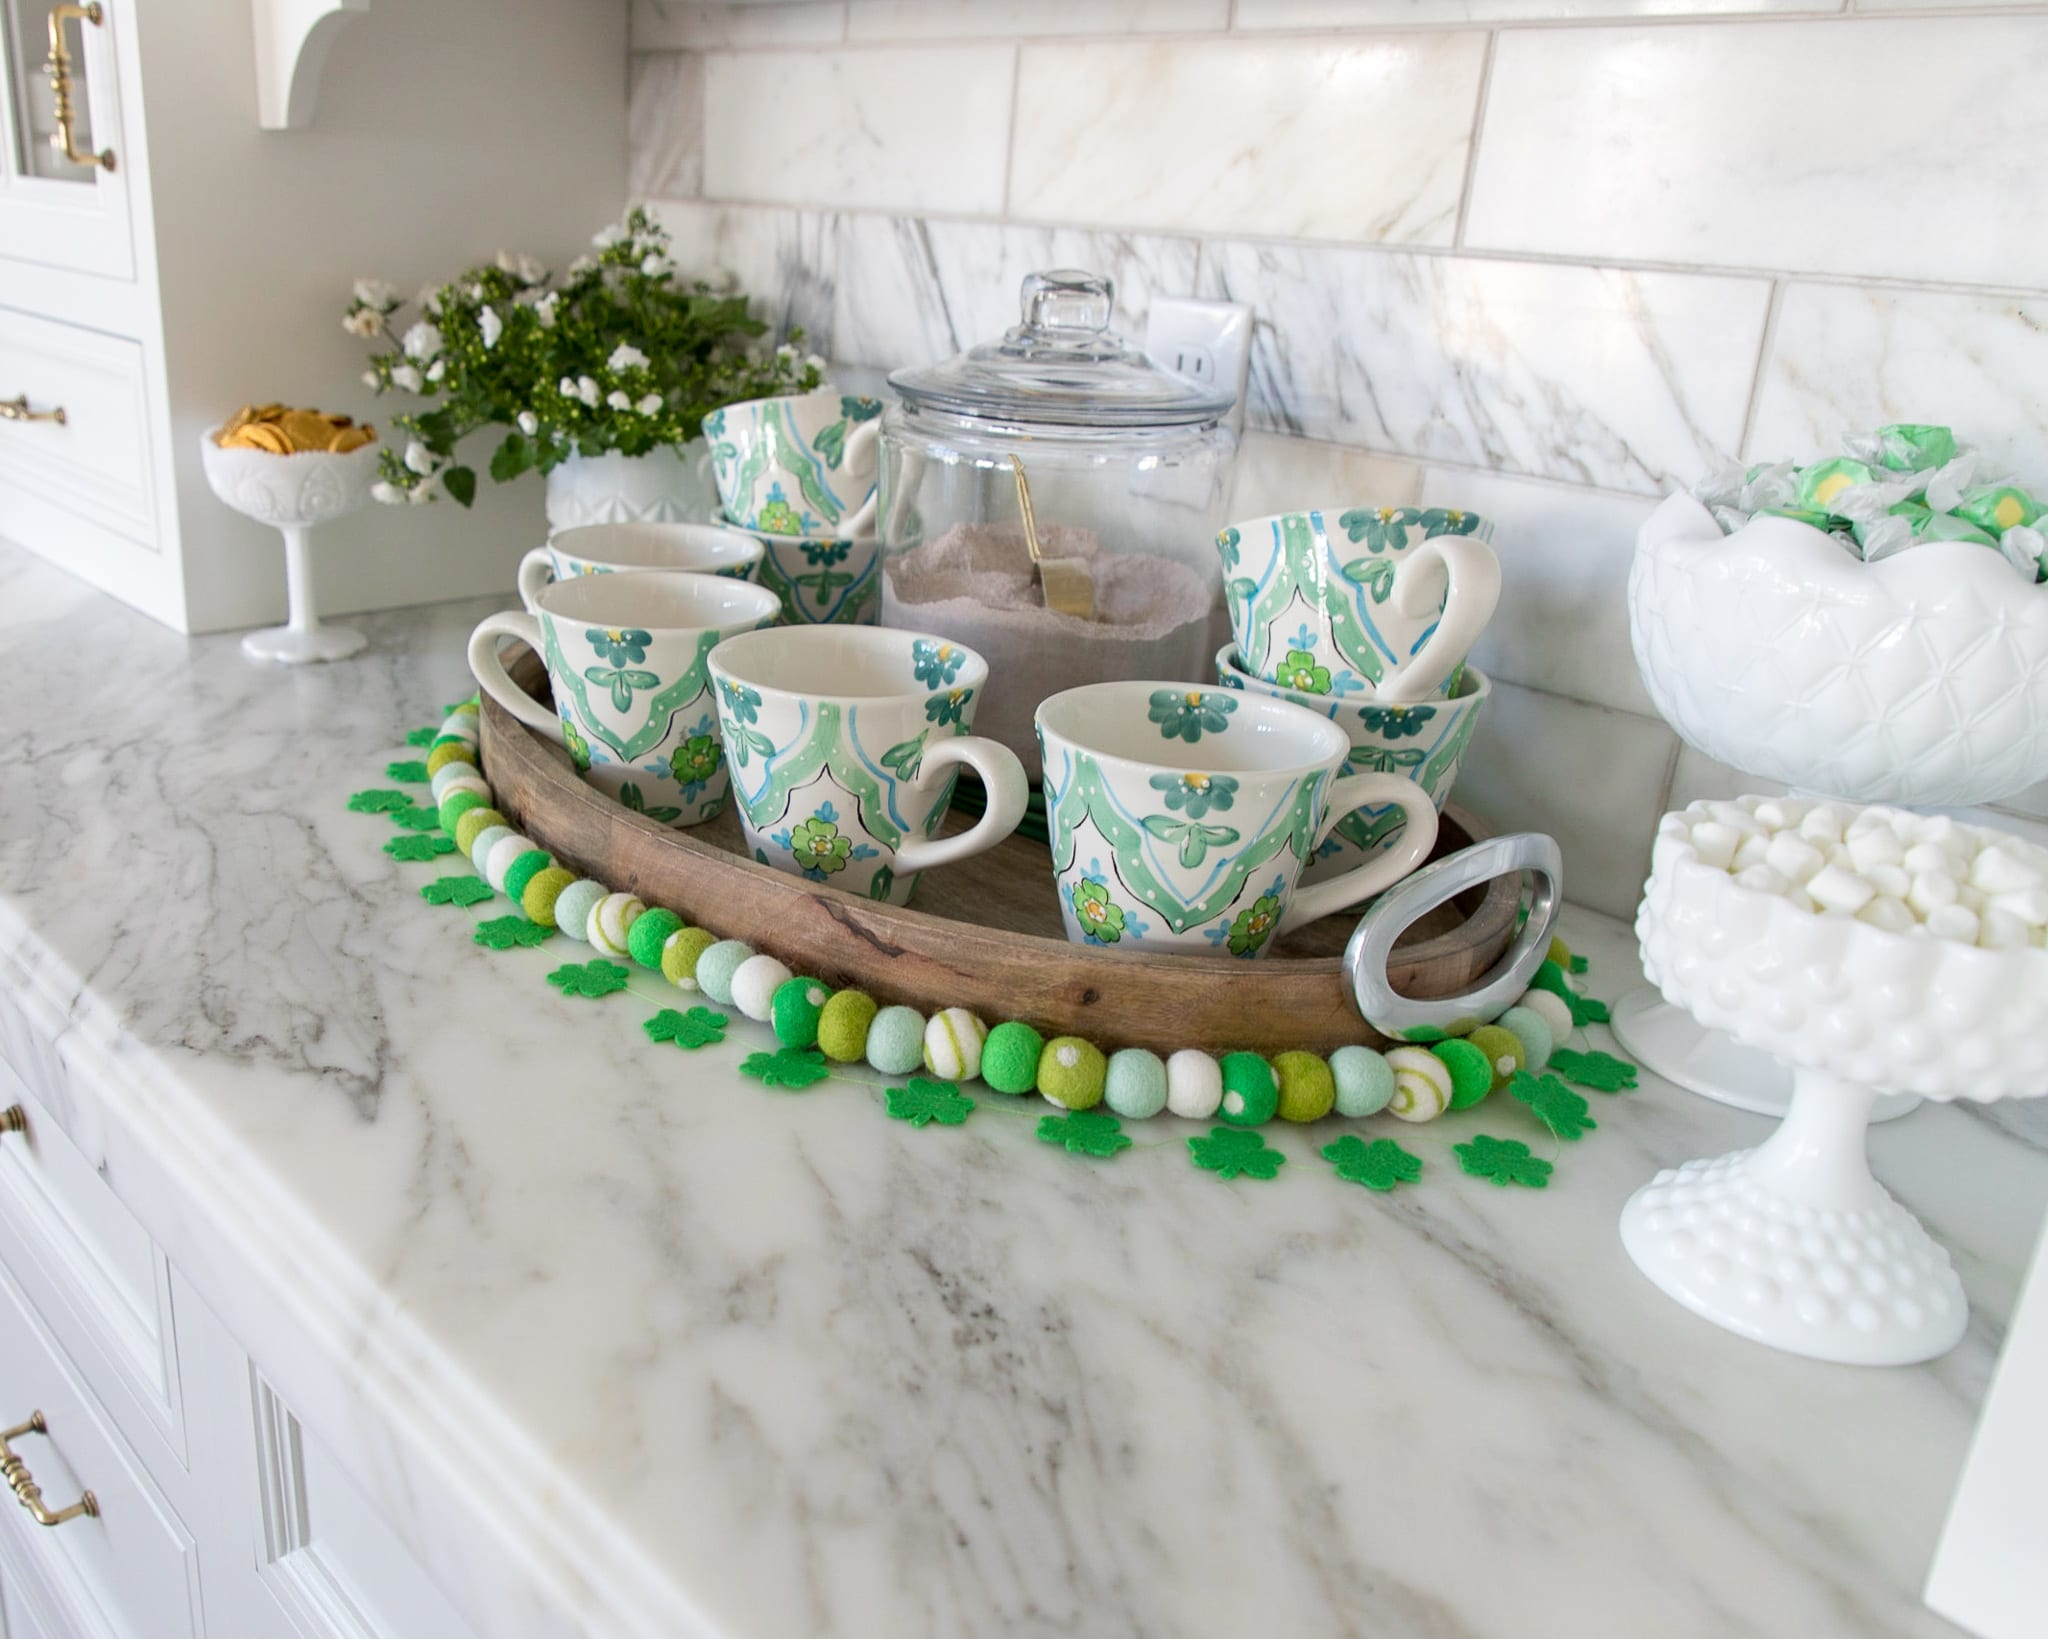 hot cocoa bar, hot chocolate bar, tablescape, spring decor, st. patricks day decor, saint patricks day, green and gold, green decor, home decor, dining room decor, dining room